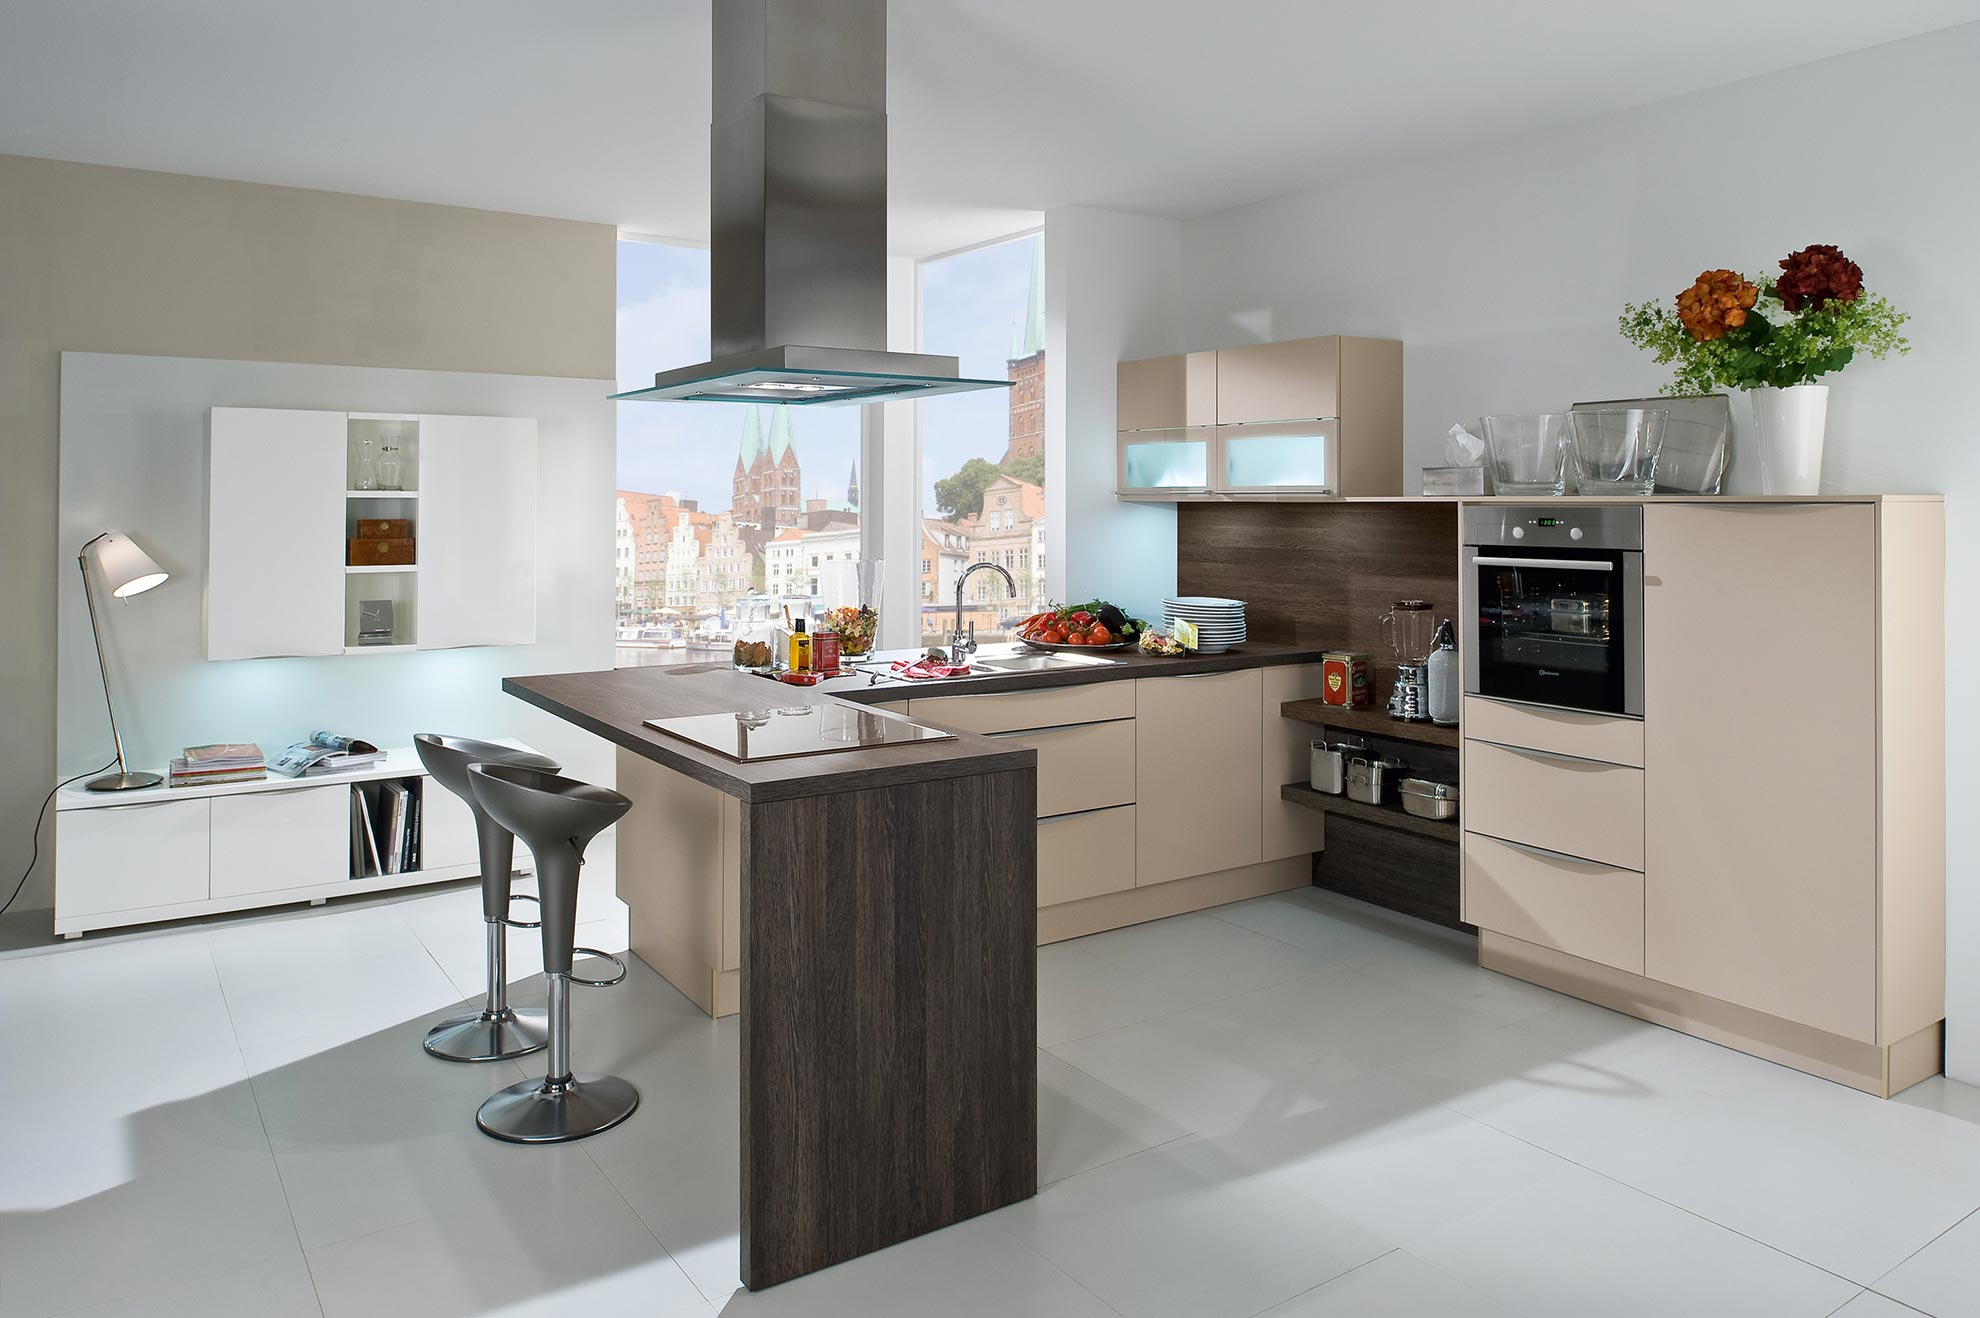 Incredible Kitchen with Breakfast Bar 1980 x 1318 · 205 kB · jpeg